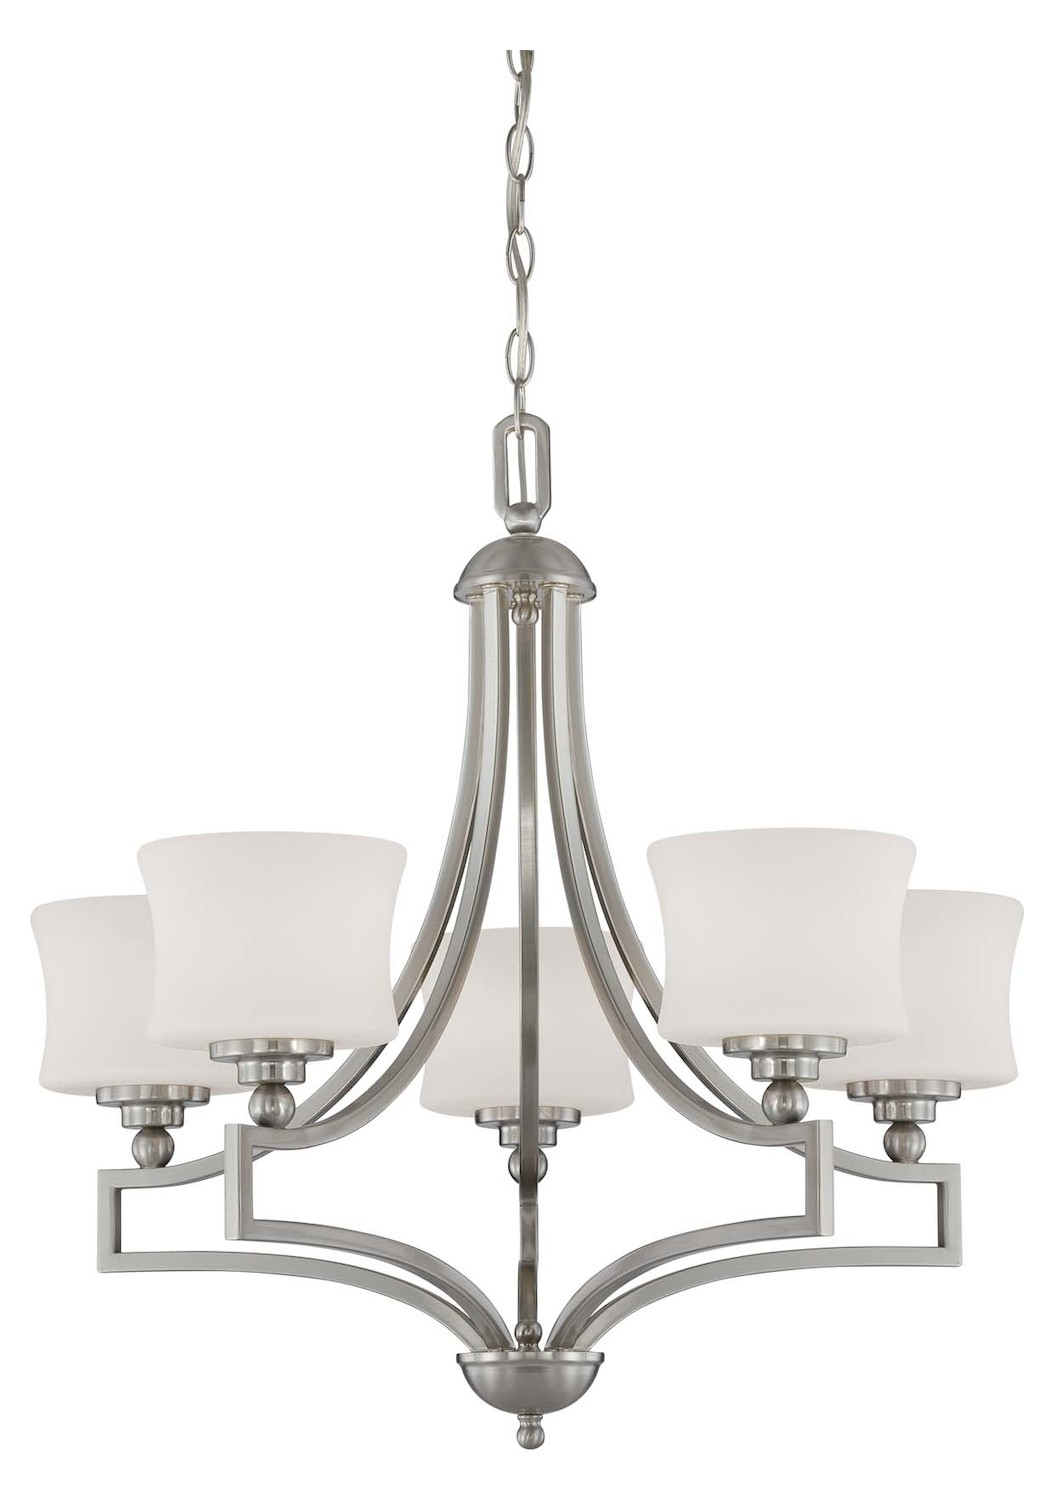 Savoy House Five Light Satin Nickel Drum Shade Chandelier Satin Nickel 1p 7210 5 Sn From Terrell